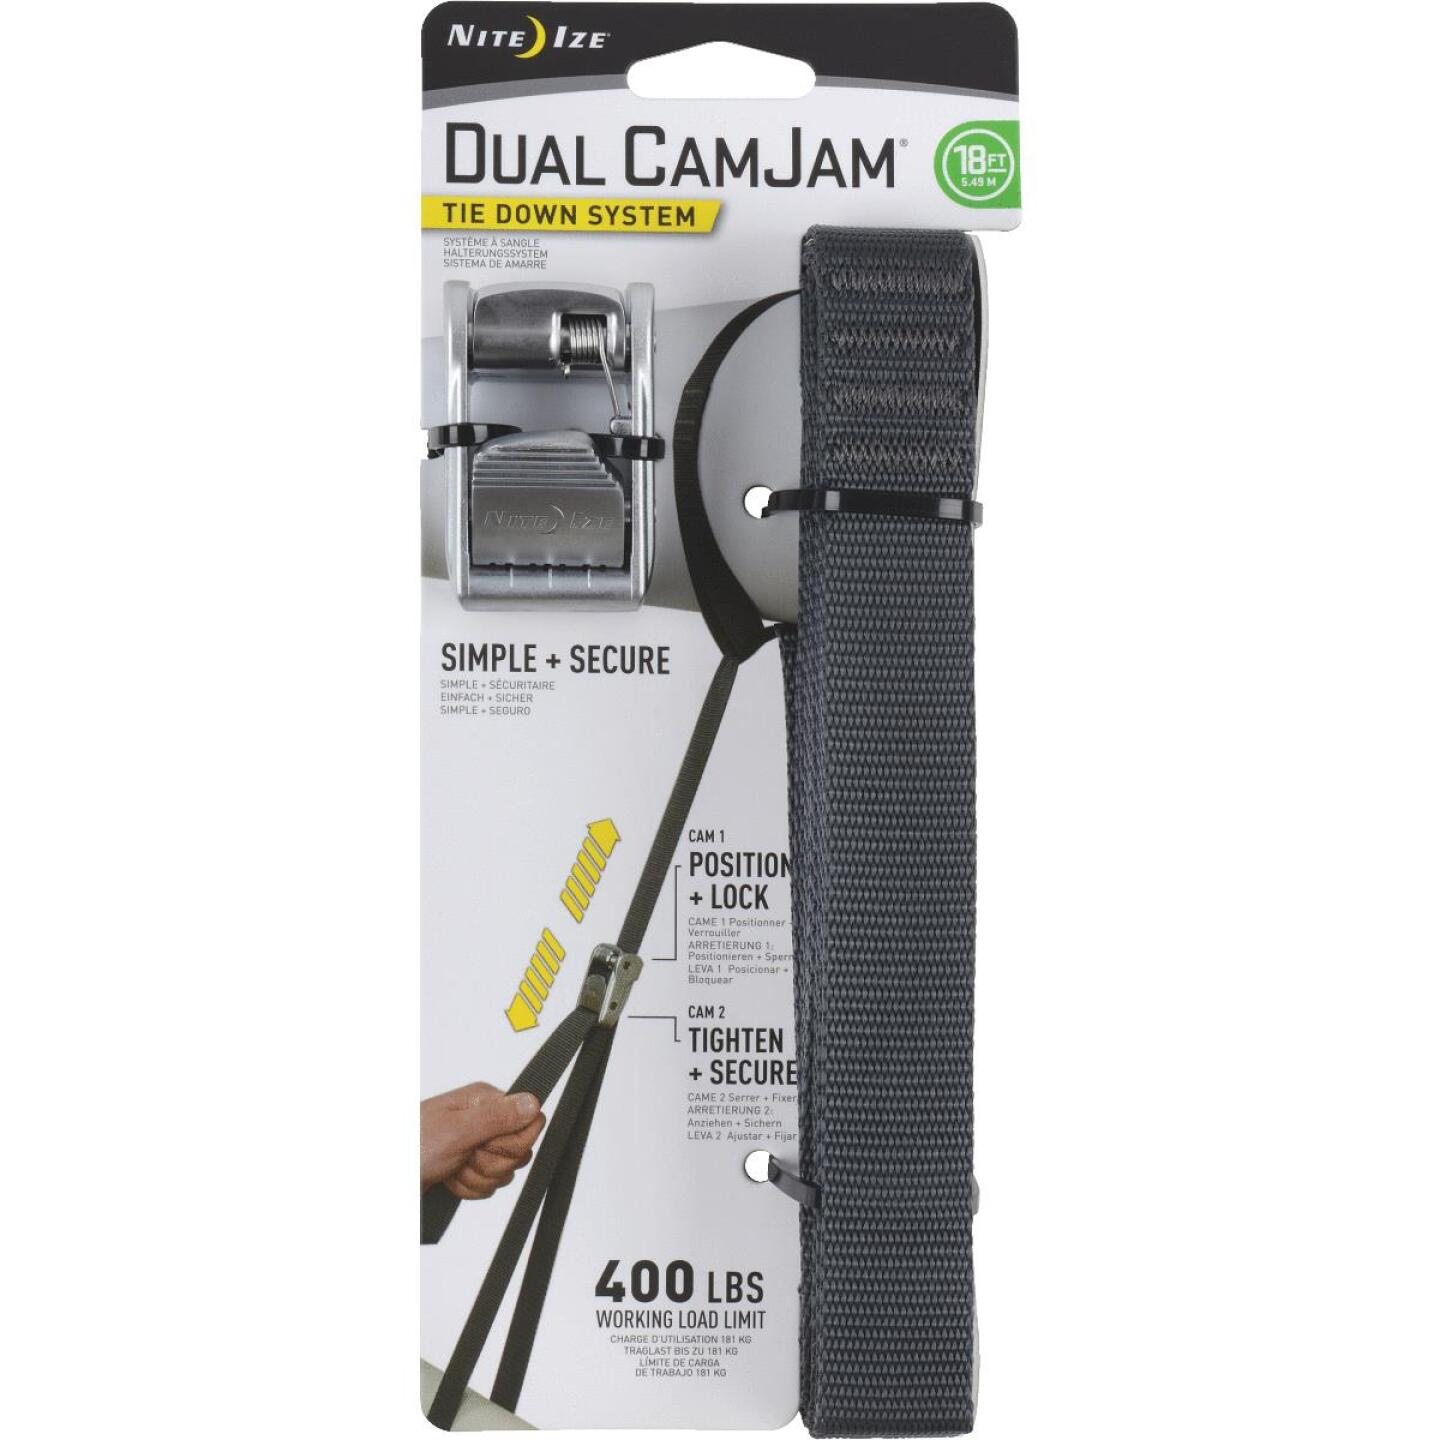 Nite Ize Dual CamJam 1 In. x 18 Ft. 400-Lb. Working Load Limit Tie-Down Strap Image 1